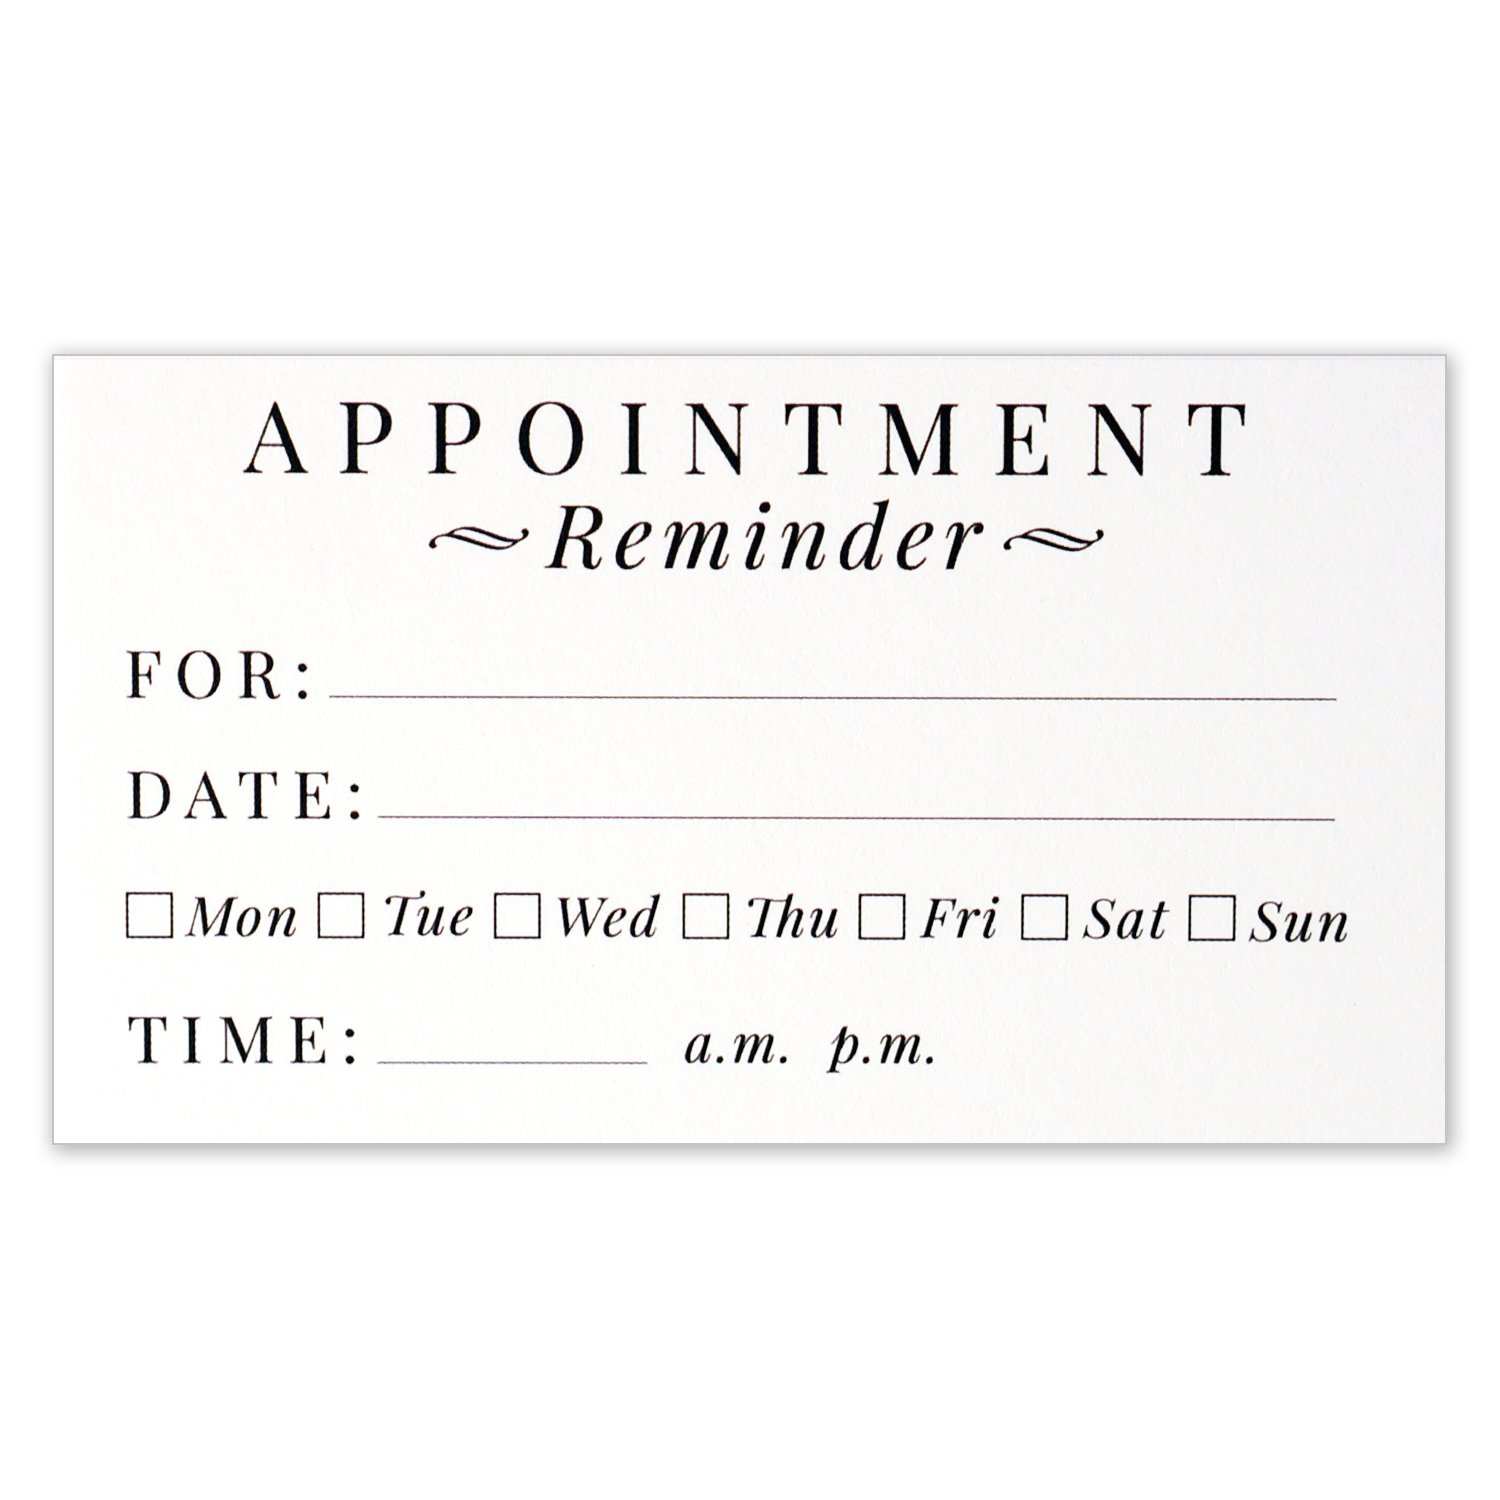 Appointment Reminder Cards - Business Card Size 3.5 X 2 Inches ...